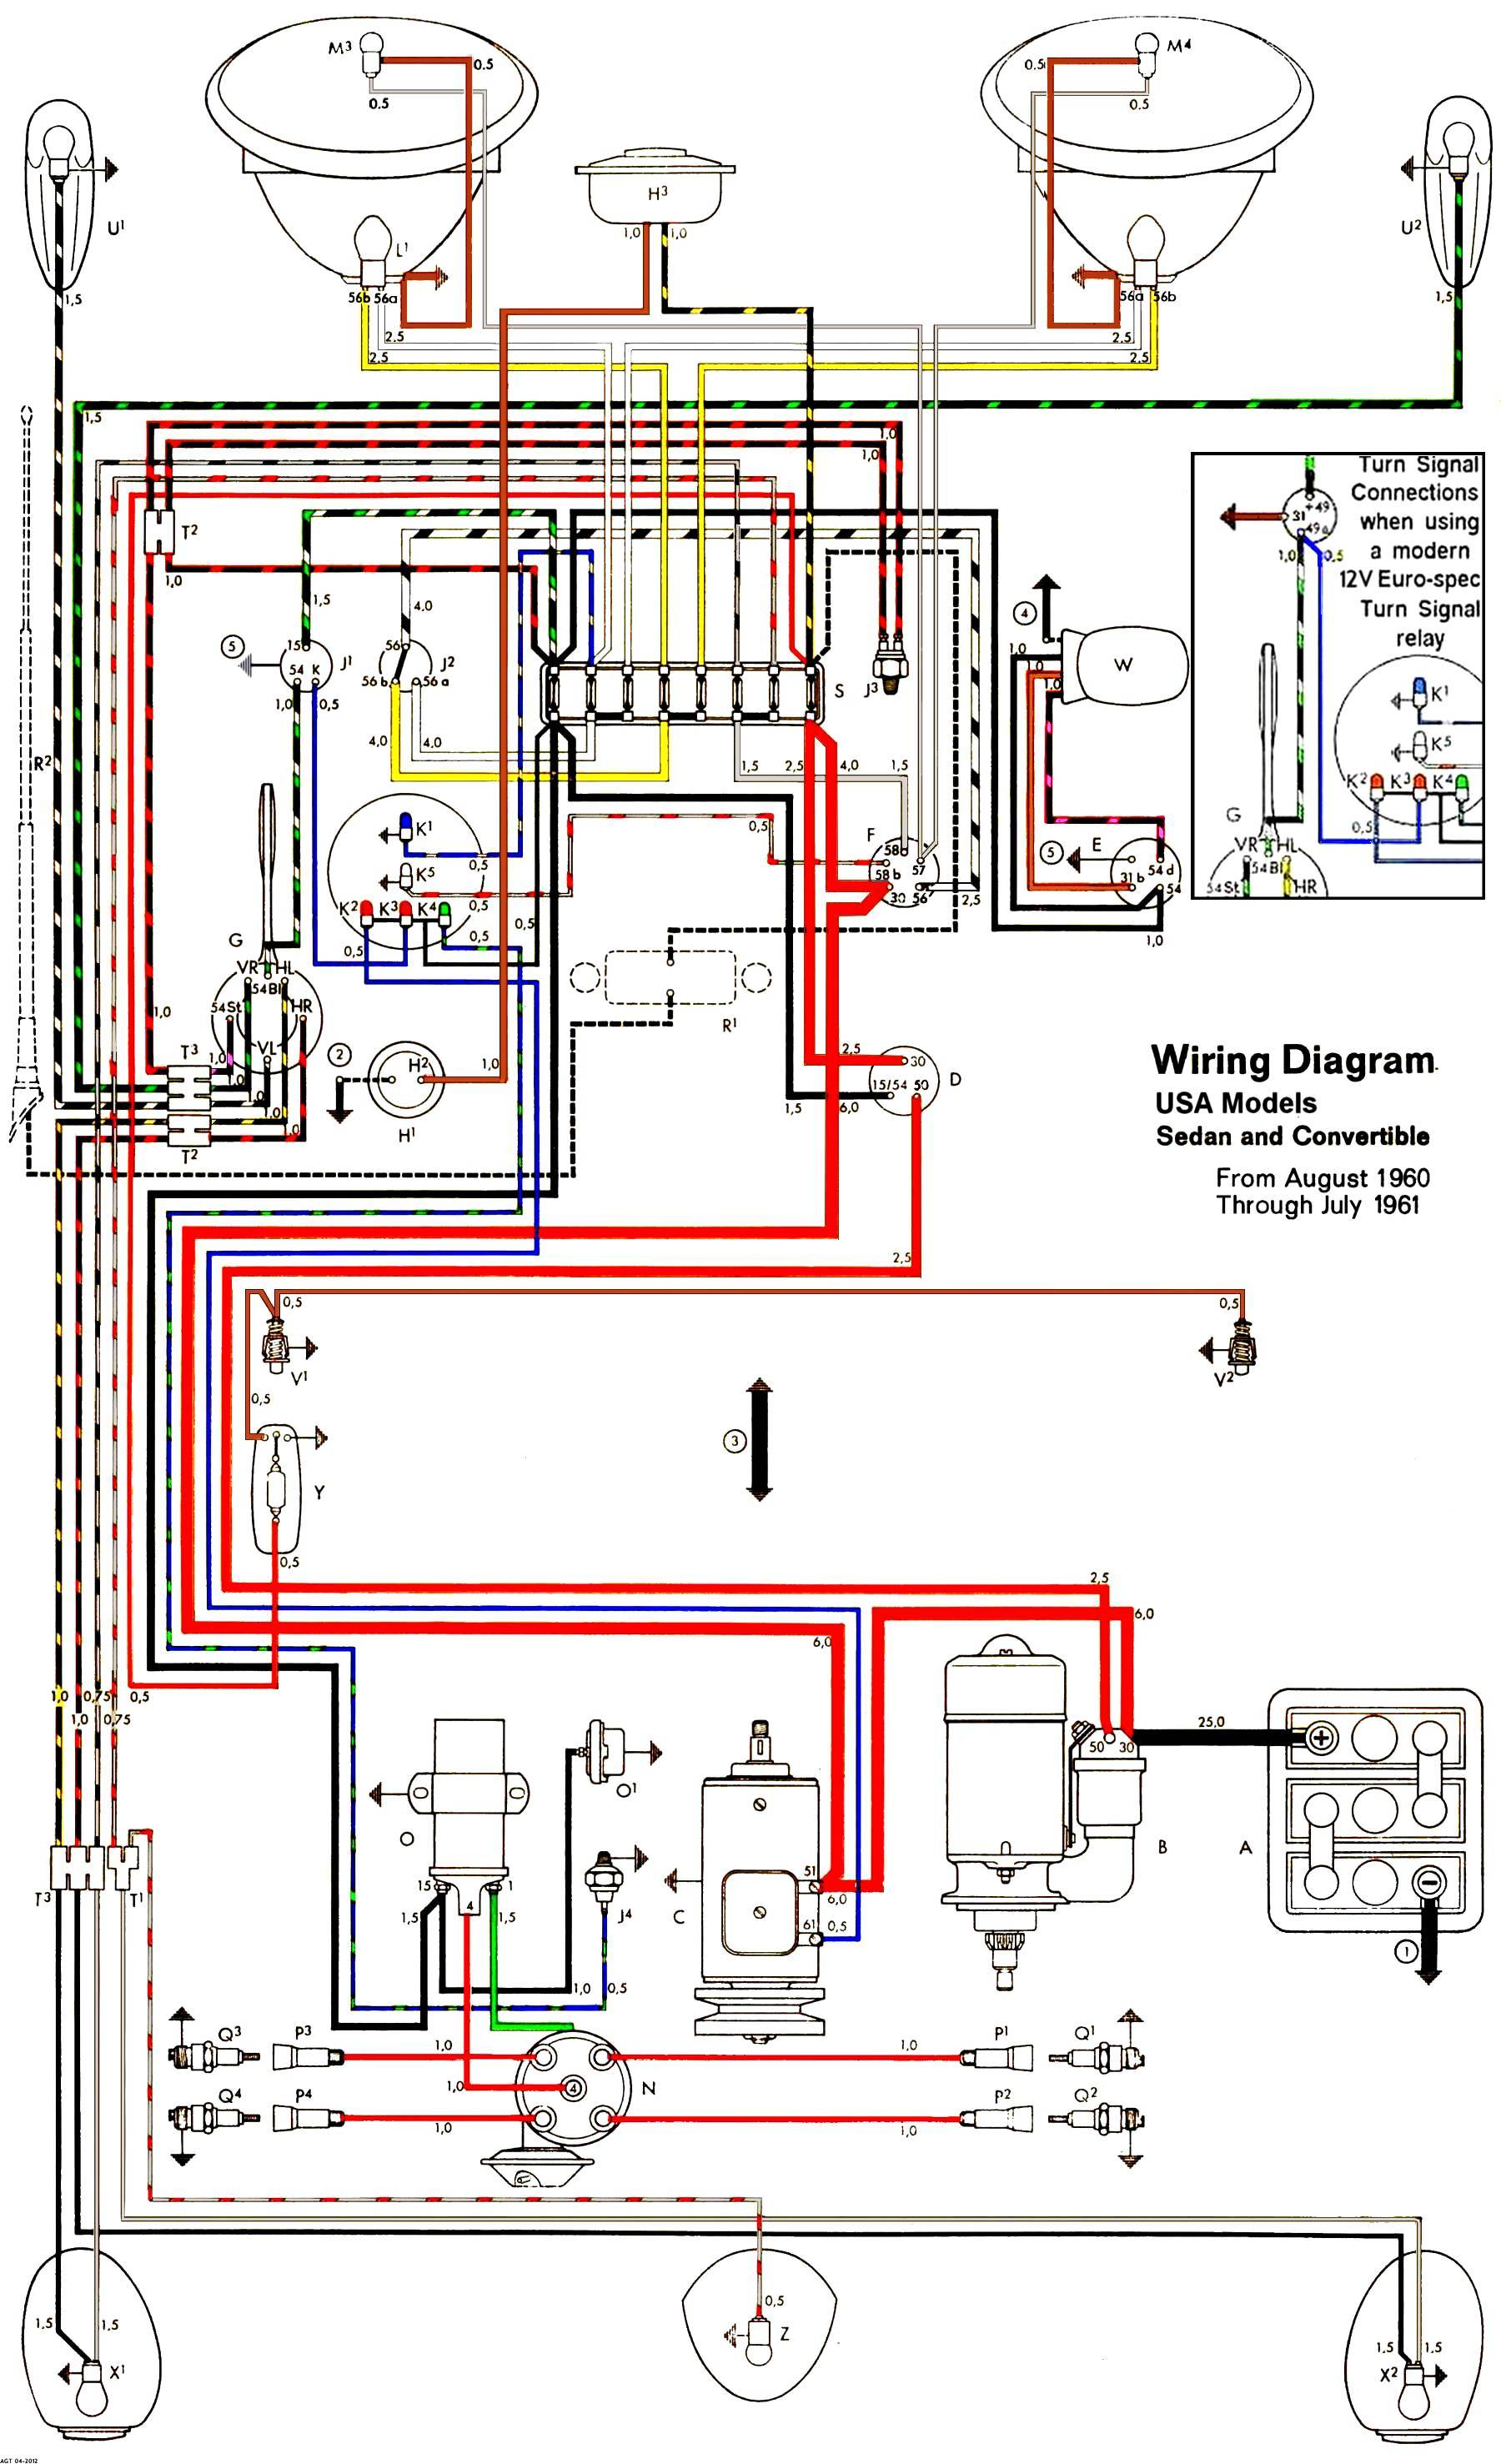 1970 Vw Relay Diagram Start Building A Wiring Lexus Rx400h Diagrams Hecho Thesamba Com Type 1 Rh 2000 Jetta